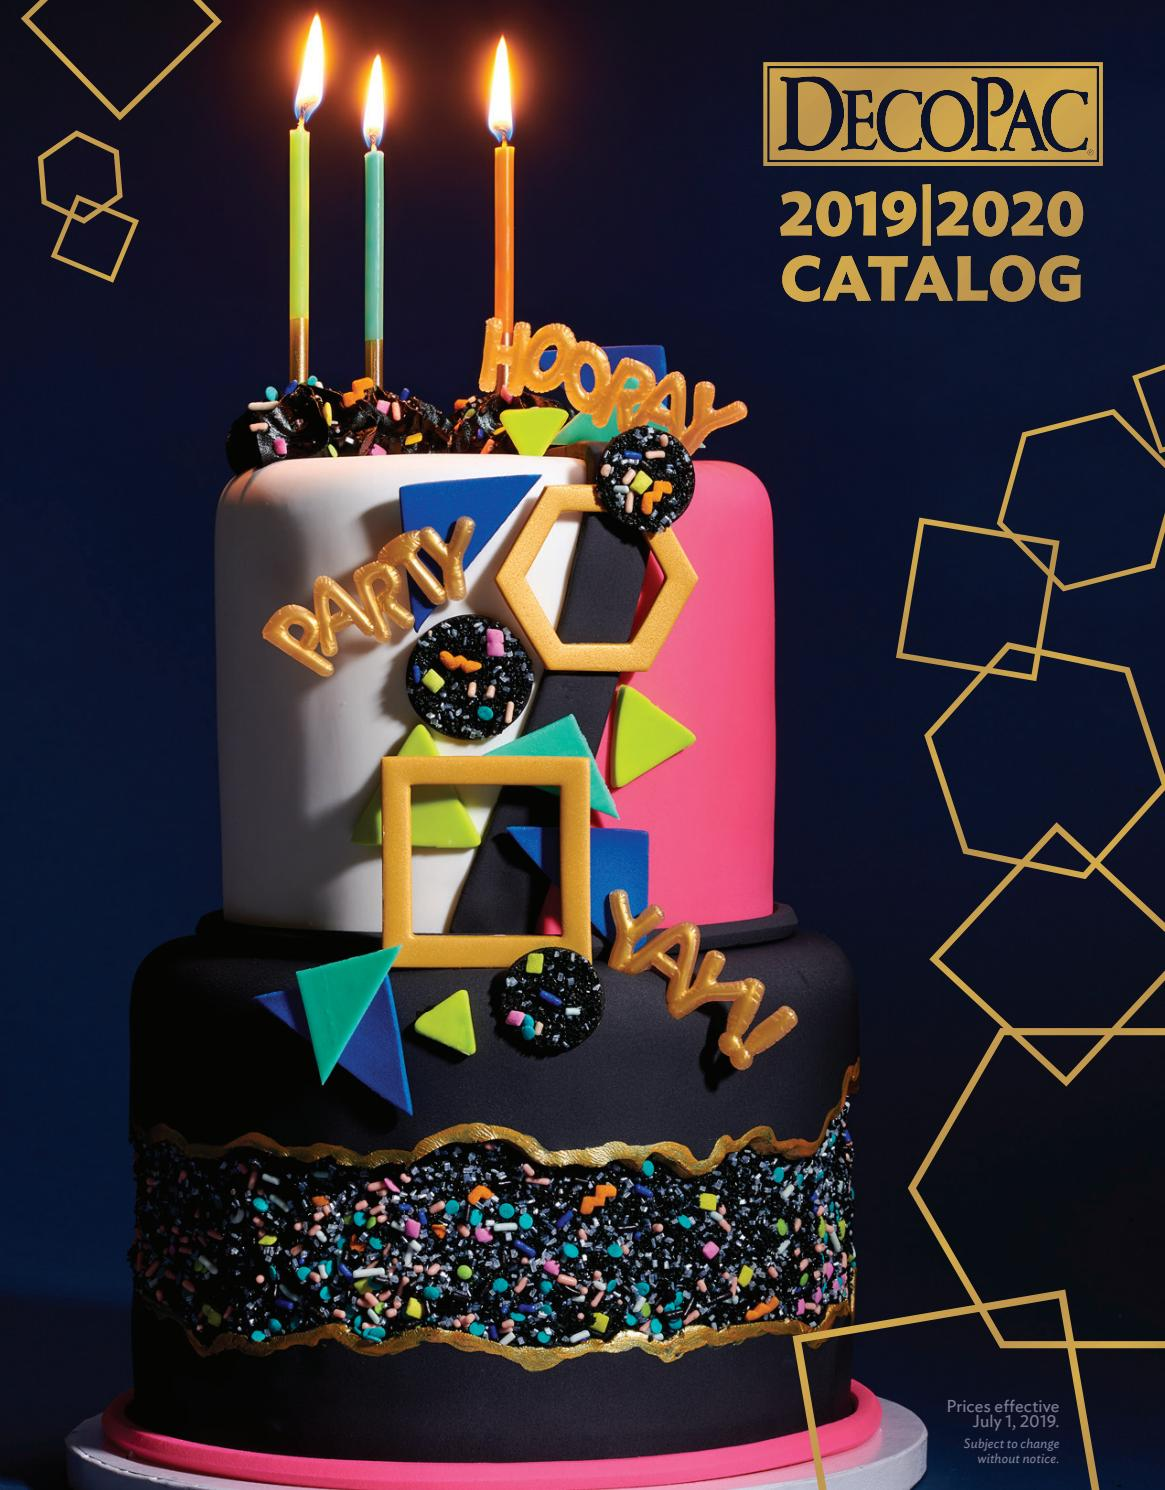 3433bffb 2019-20 Catalog by DecoPac - issuu